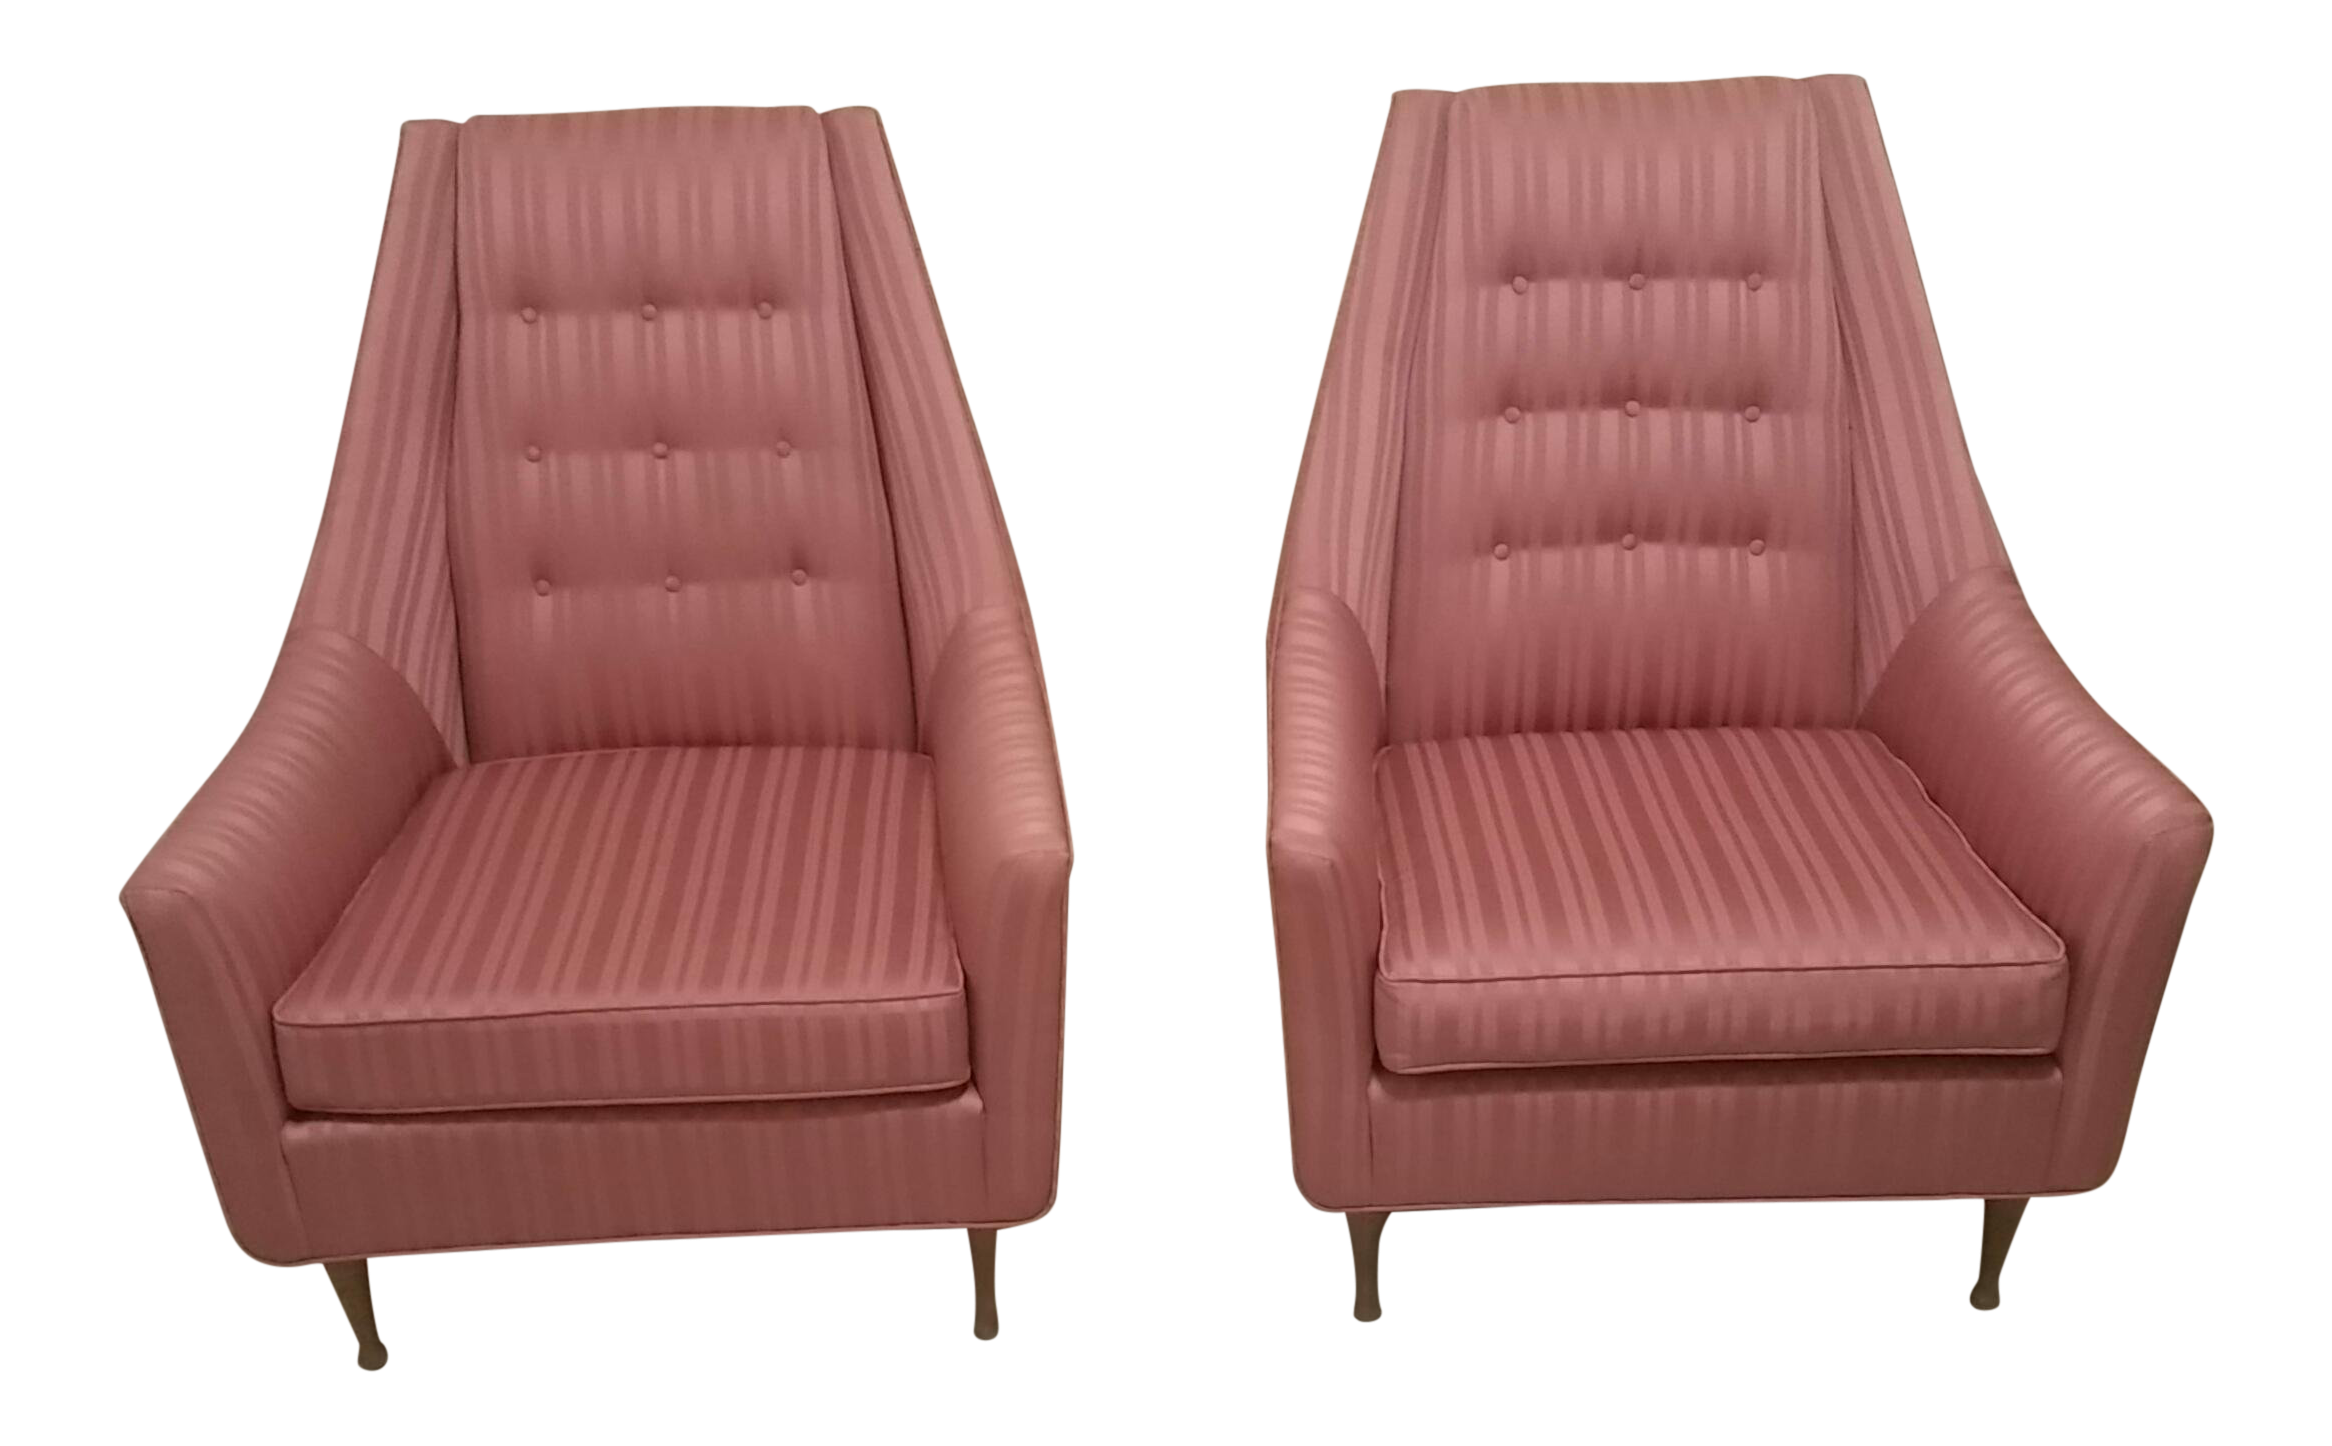 Vintage Mid-Century Flexsteel Pink Jacquard Stripe Upholstered Chairs- A Pair For Sale  sc 1 st  Chairish & Vintage Mid-Century Flexsteel Pink Jacquard Stripe Upholstered ...